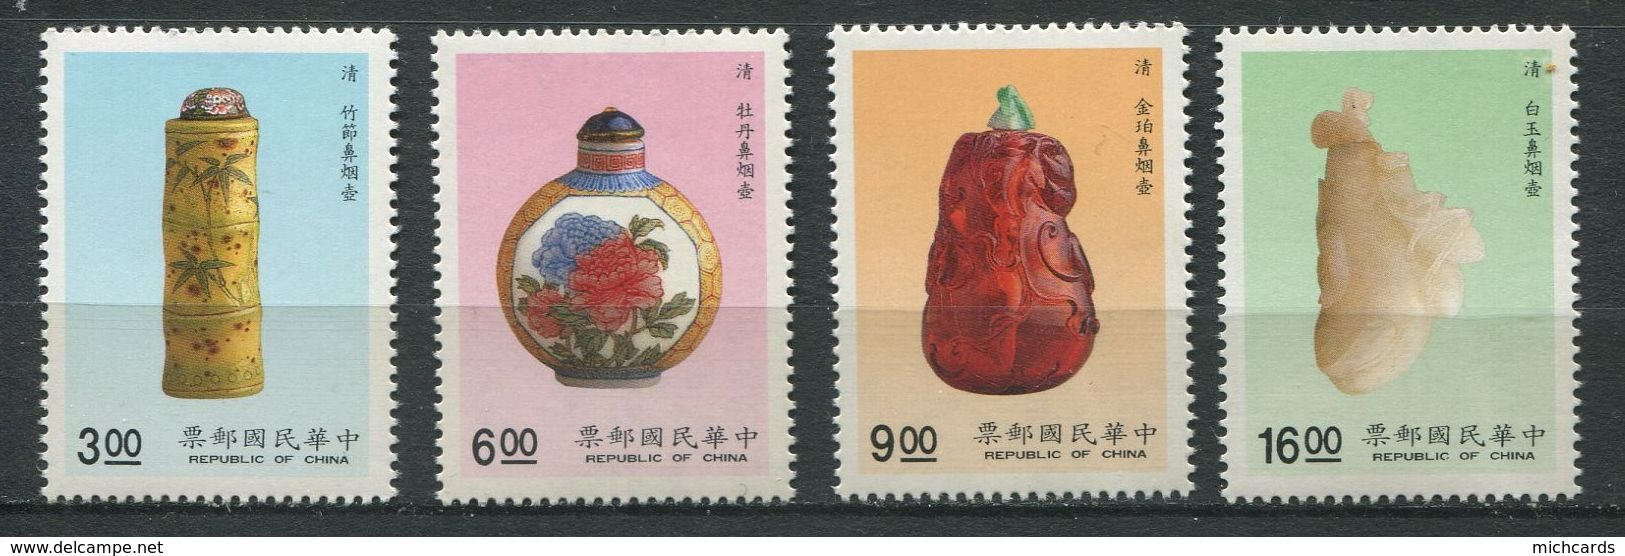 254 FORMOSE 1990 - Yvert 1854/57 - Tabatiere - Neuf ** (MNH) Sans Trace De Charniere - 1945-... Republic Of China